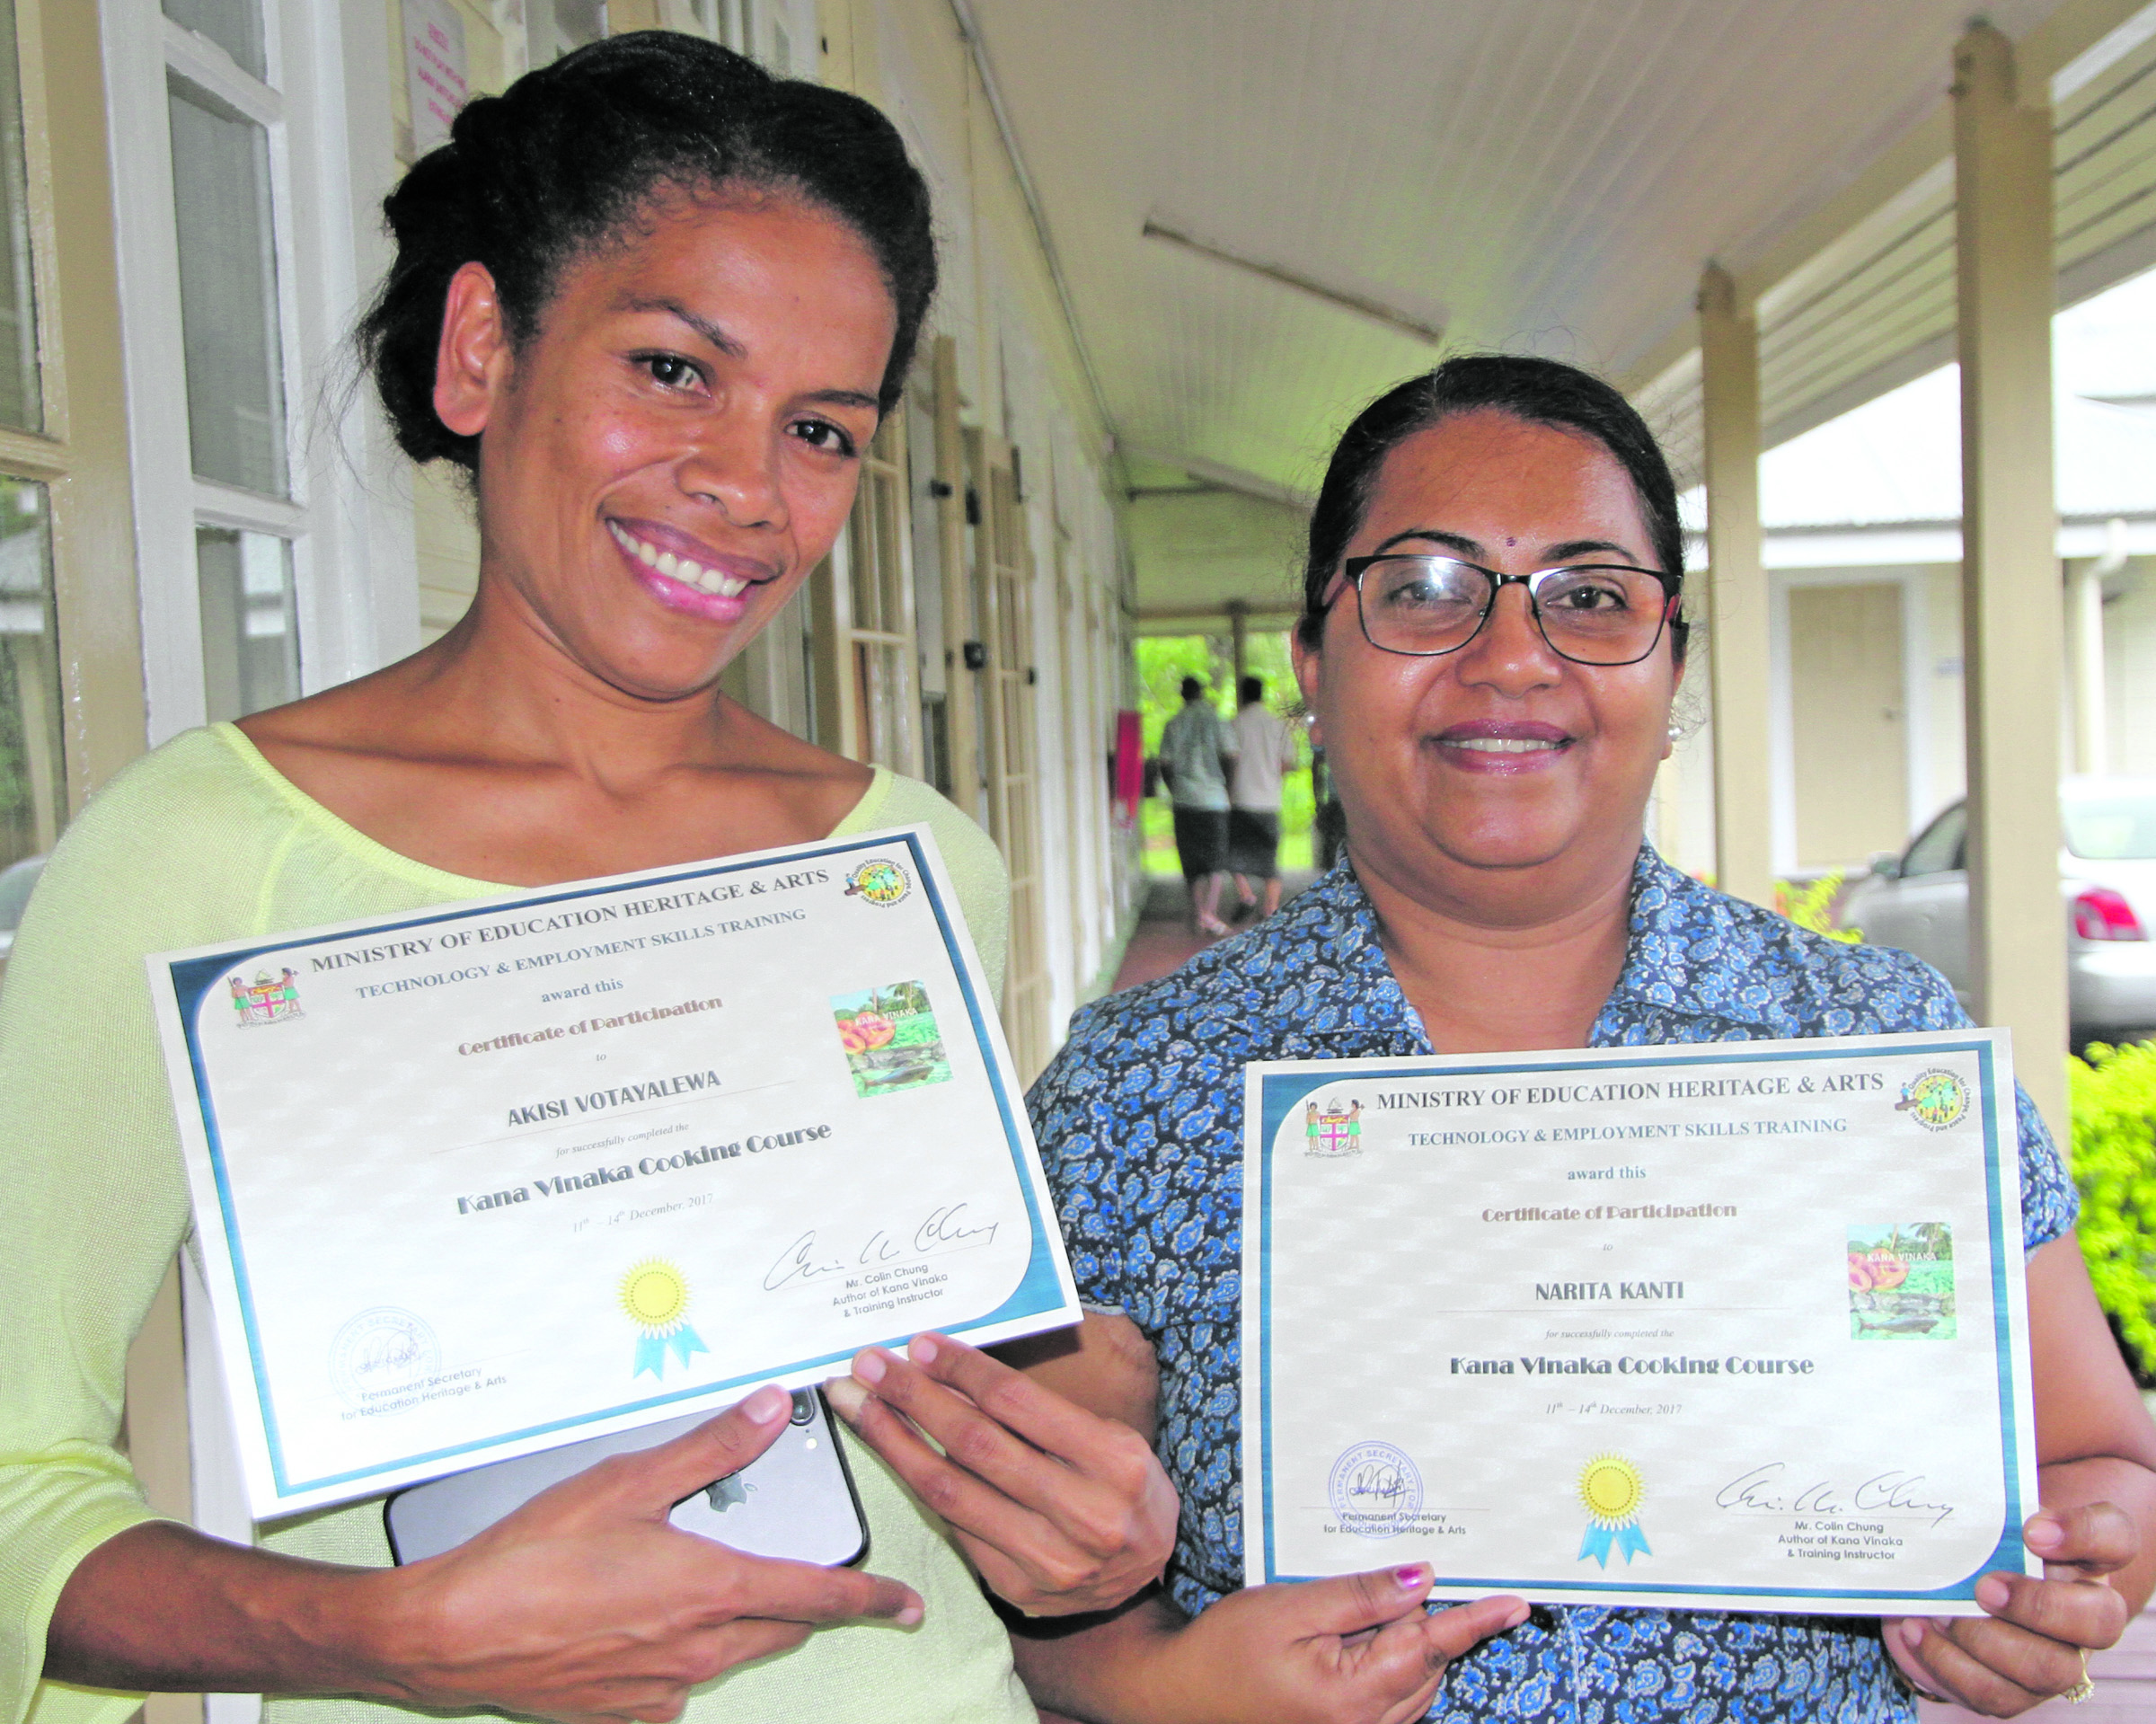 Kana Vinaka cooking course certificate recipients Akisi Votayalewa and Narita Kanti at Technical College Suva on December 14, 2017. Photo: Ronald Kumar.